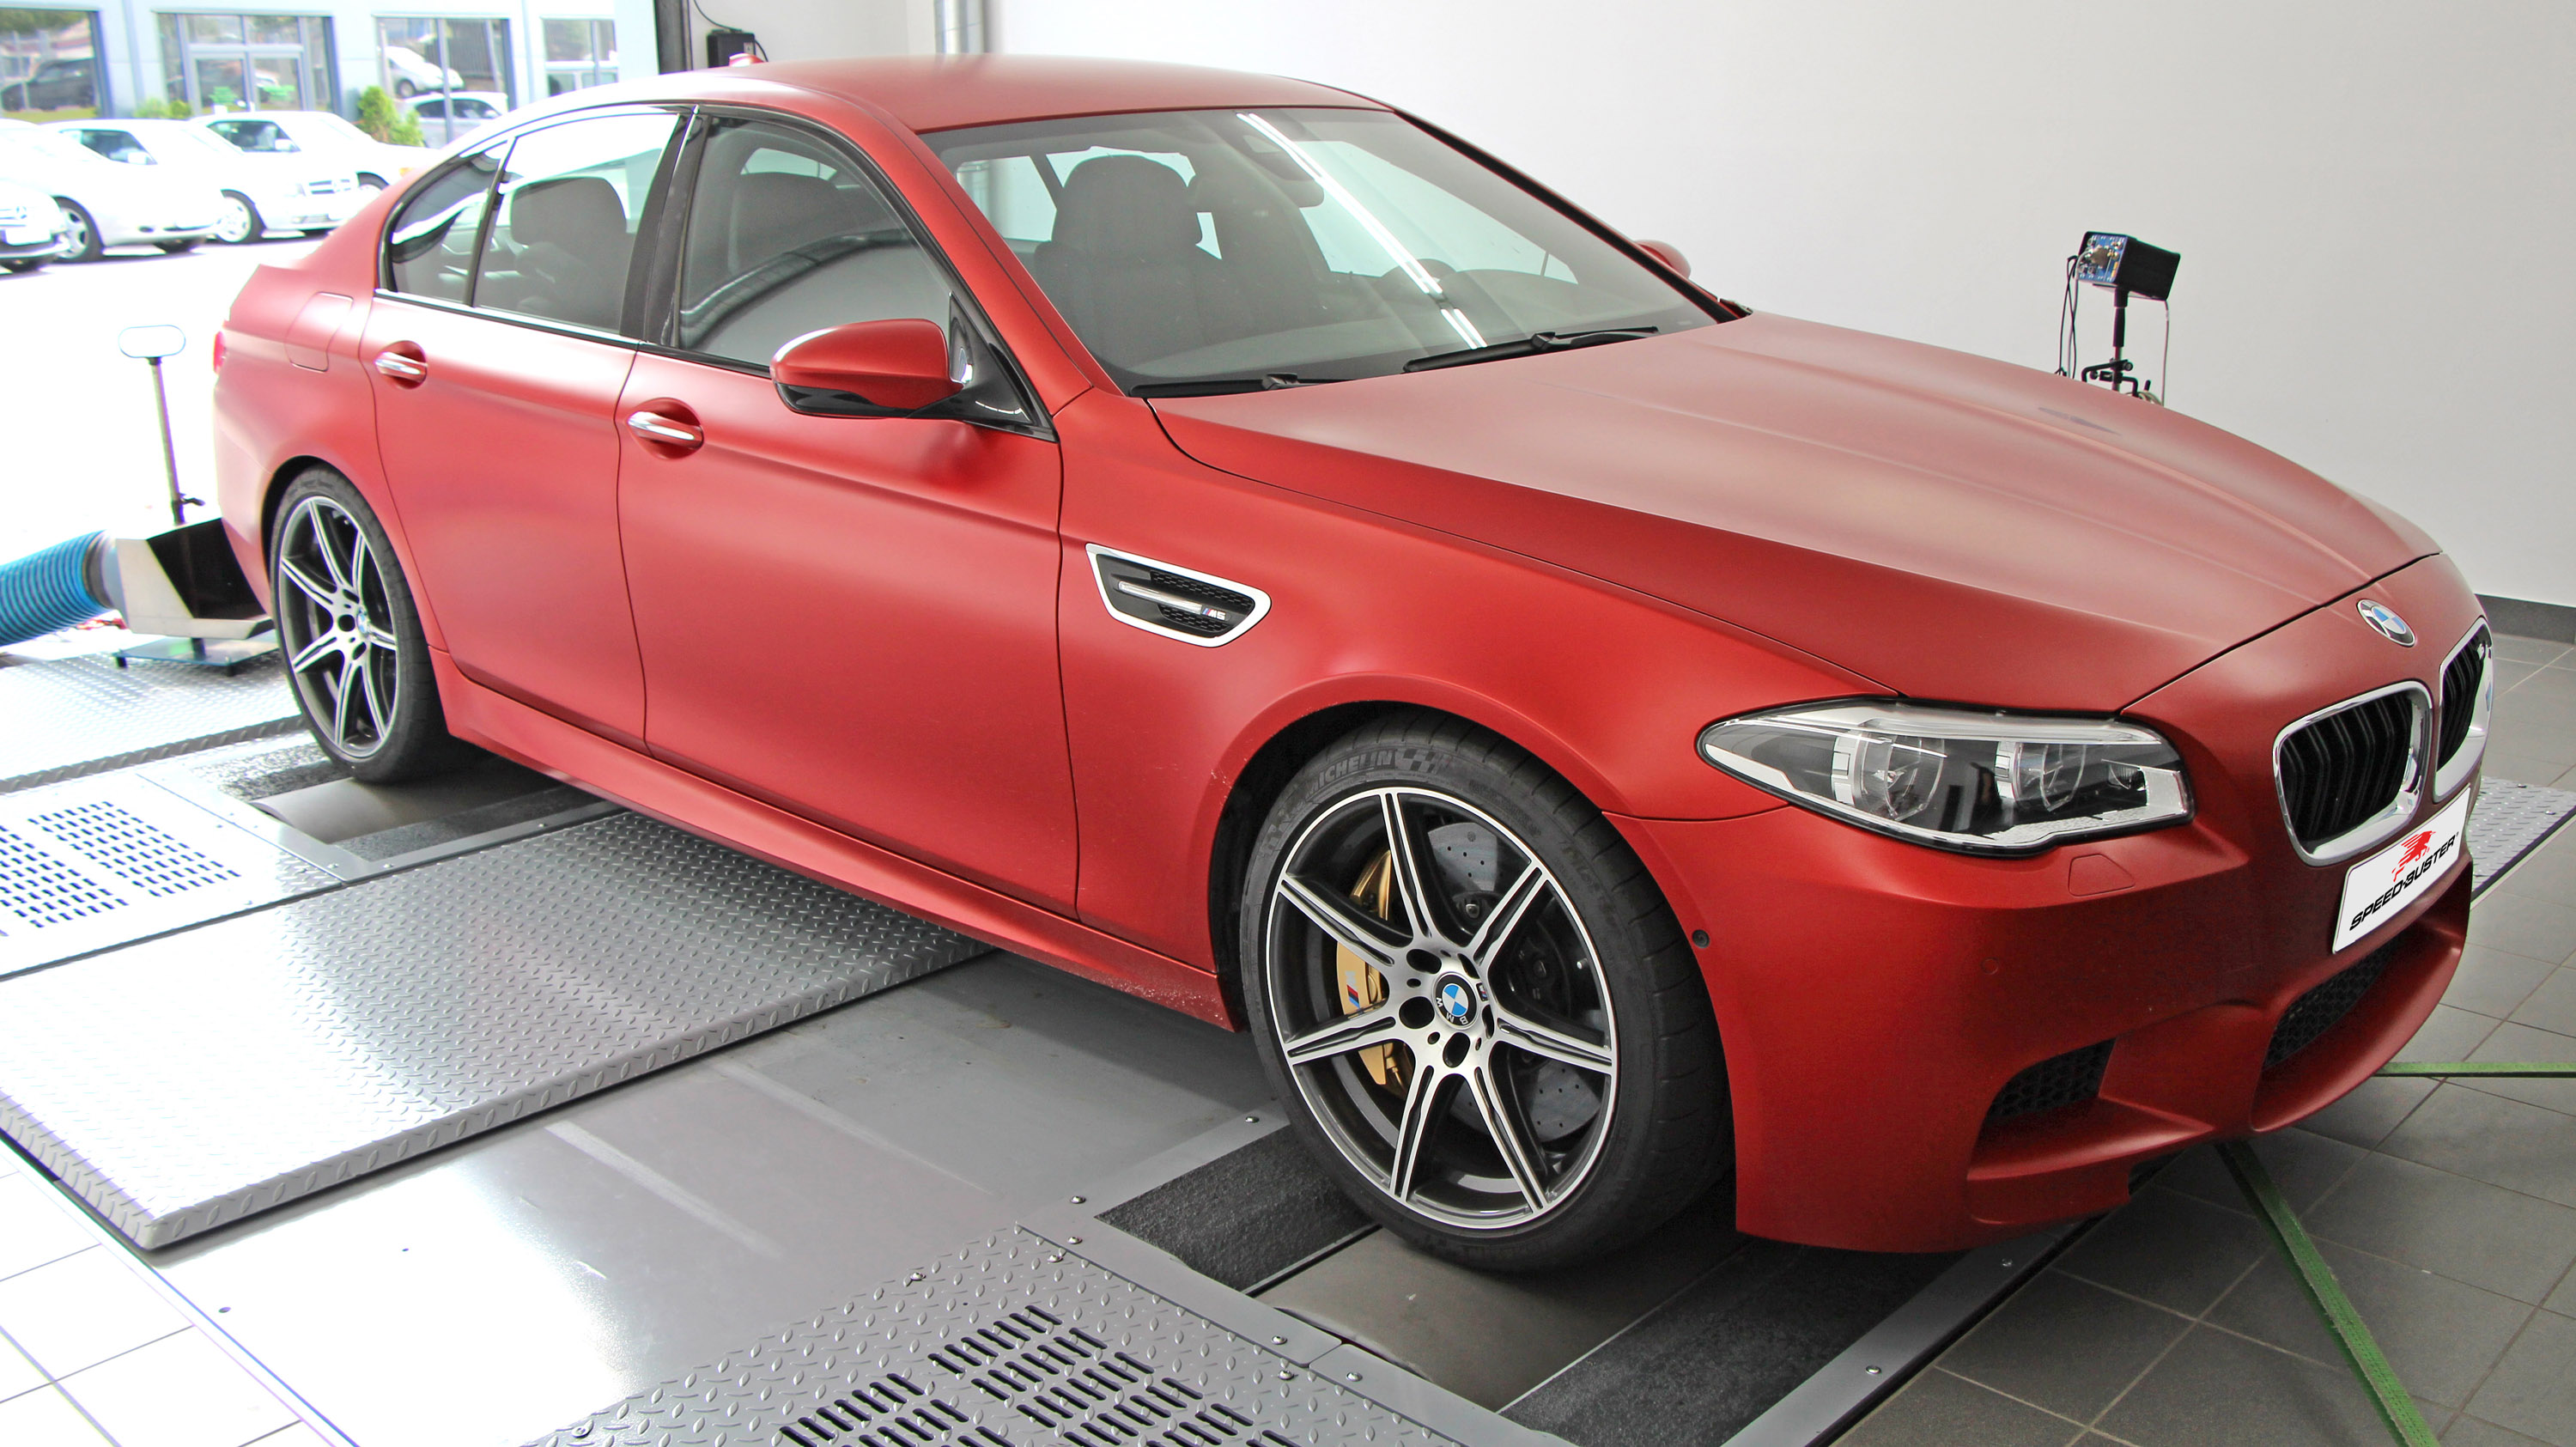 speed buster releases power upgrade for bmw m5 f10. Black Bedroom Furniture Sets. Home Design Ideas